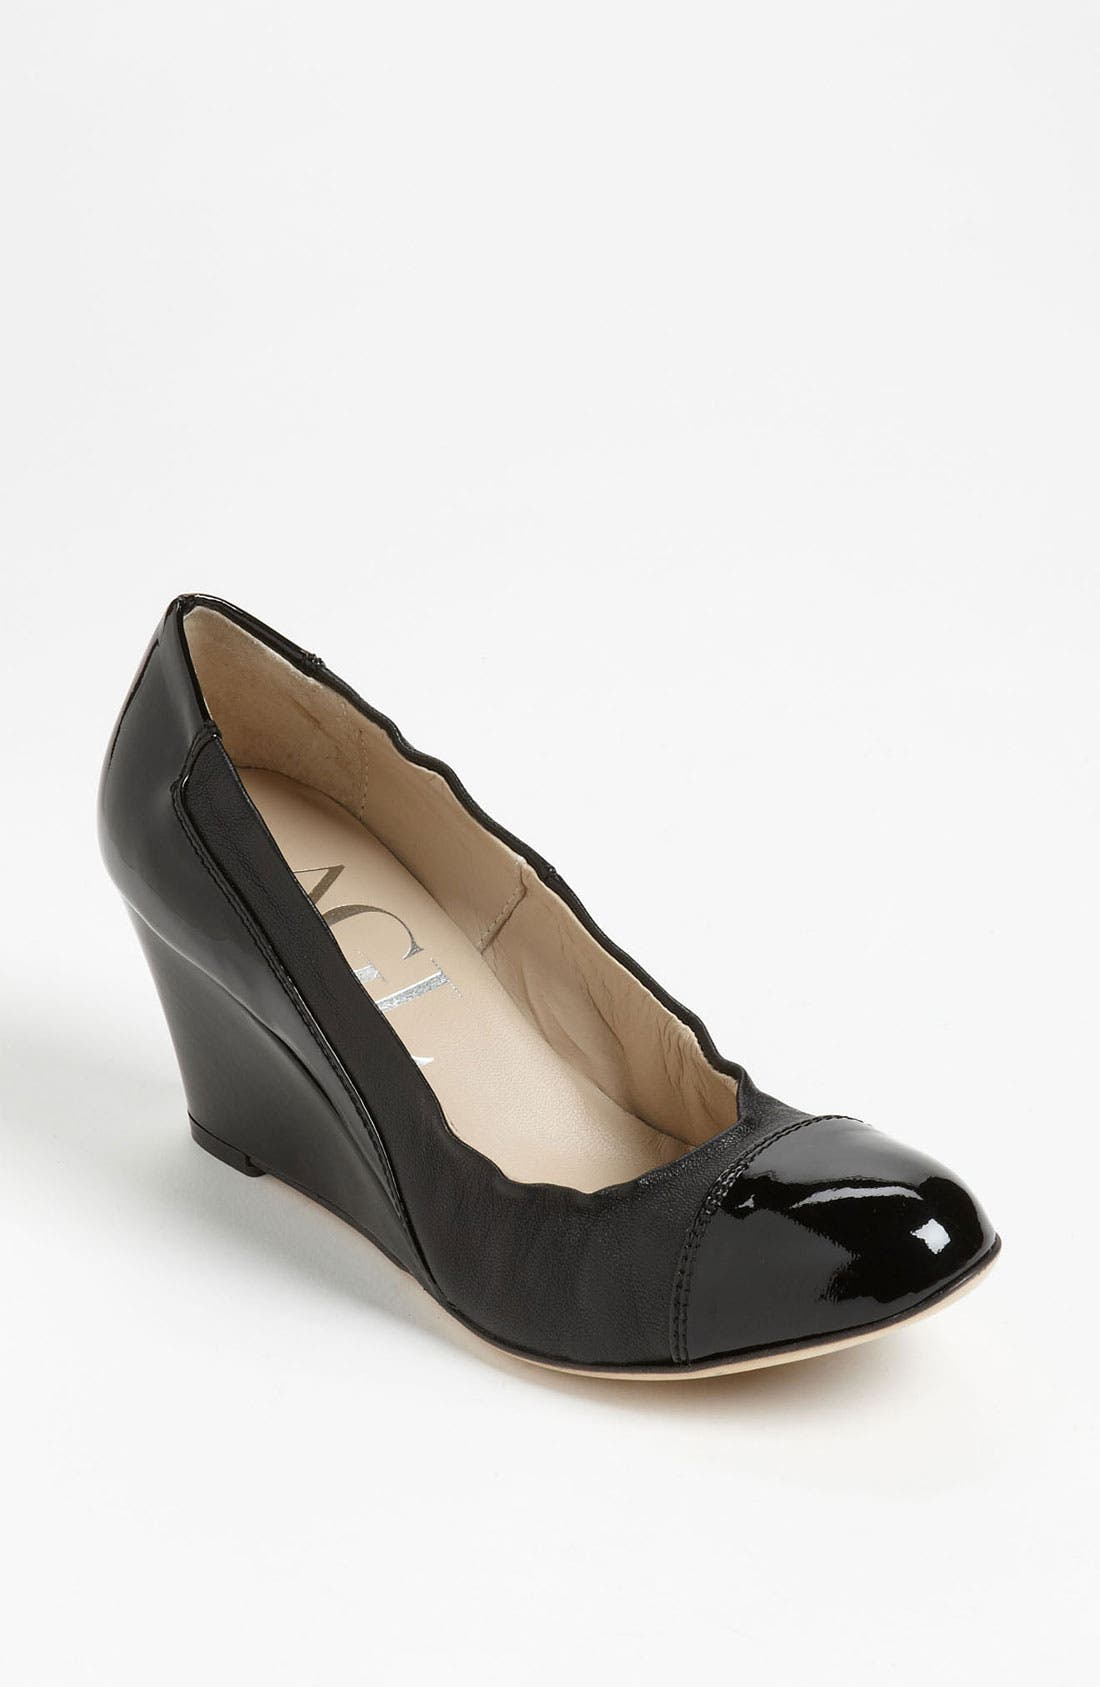 Main Image - Attilio Giusti Leombruni Stretch Wedge Pump